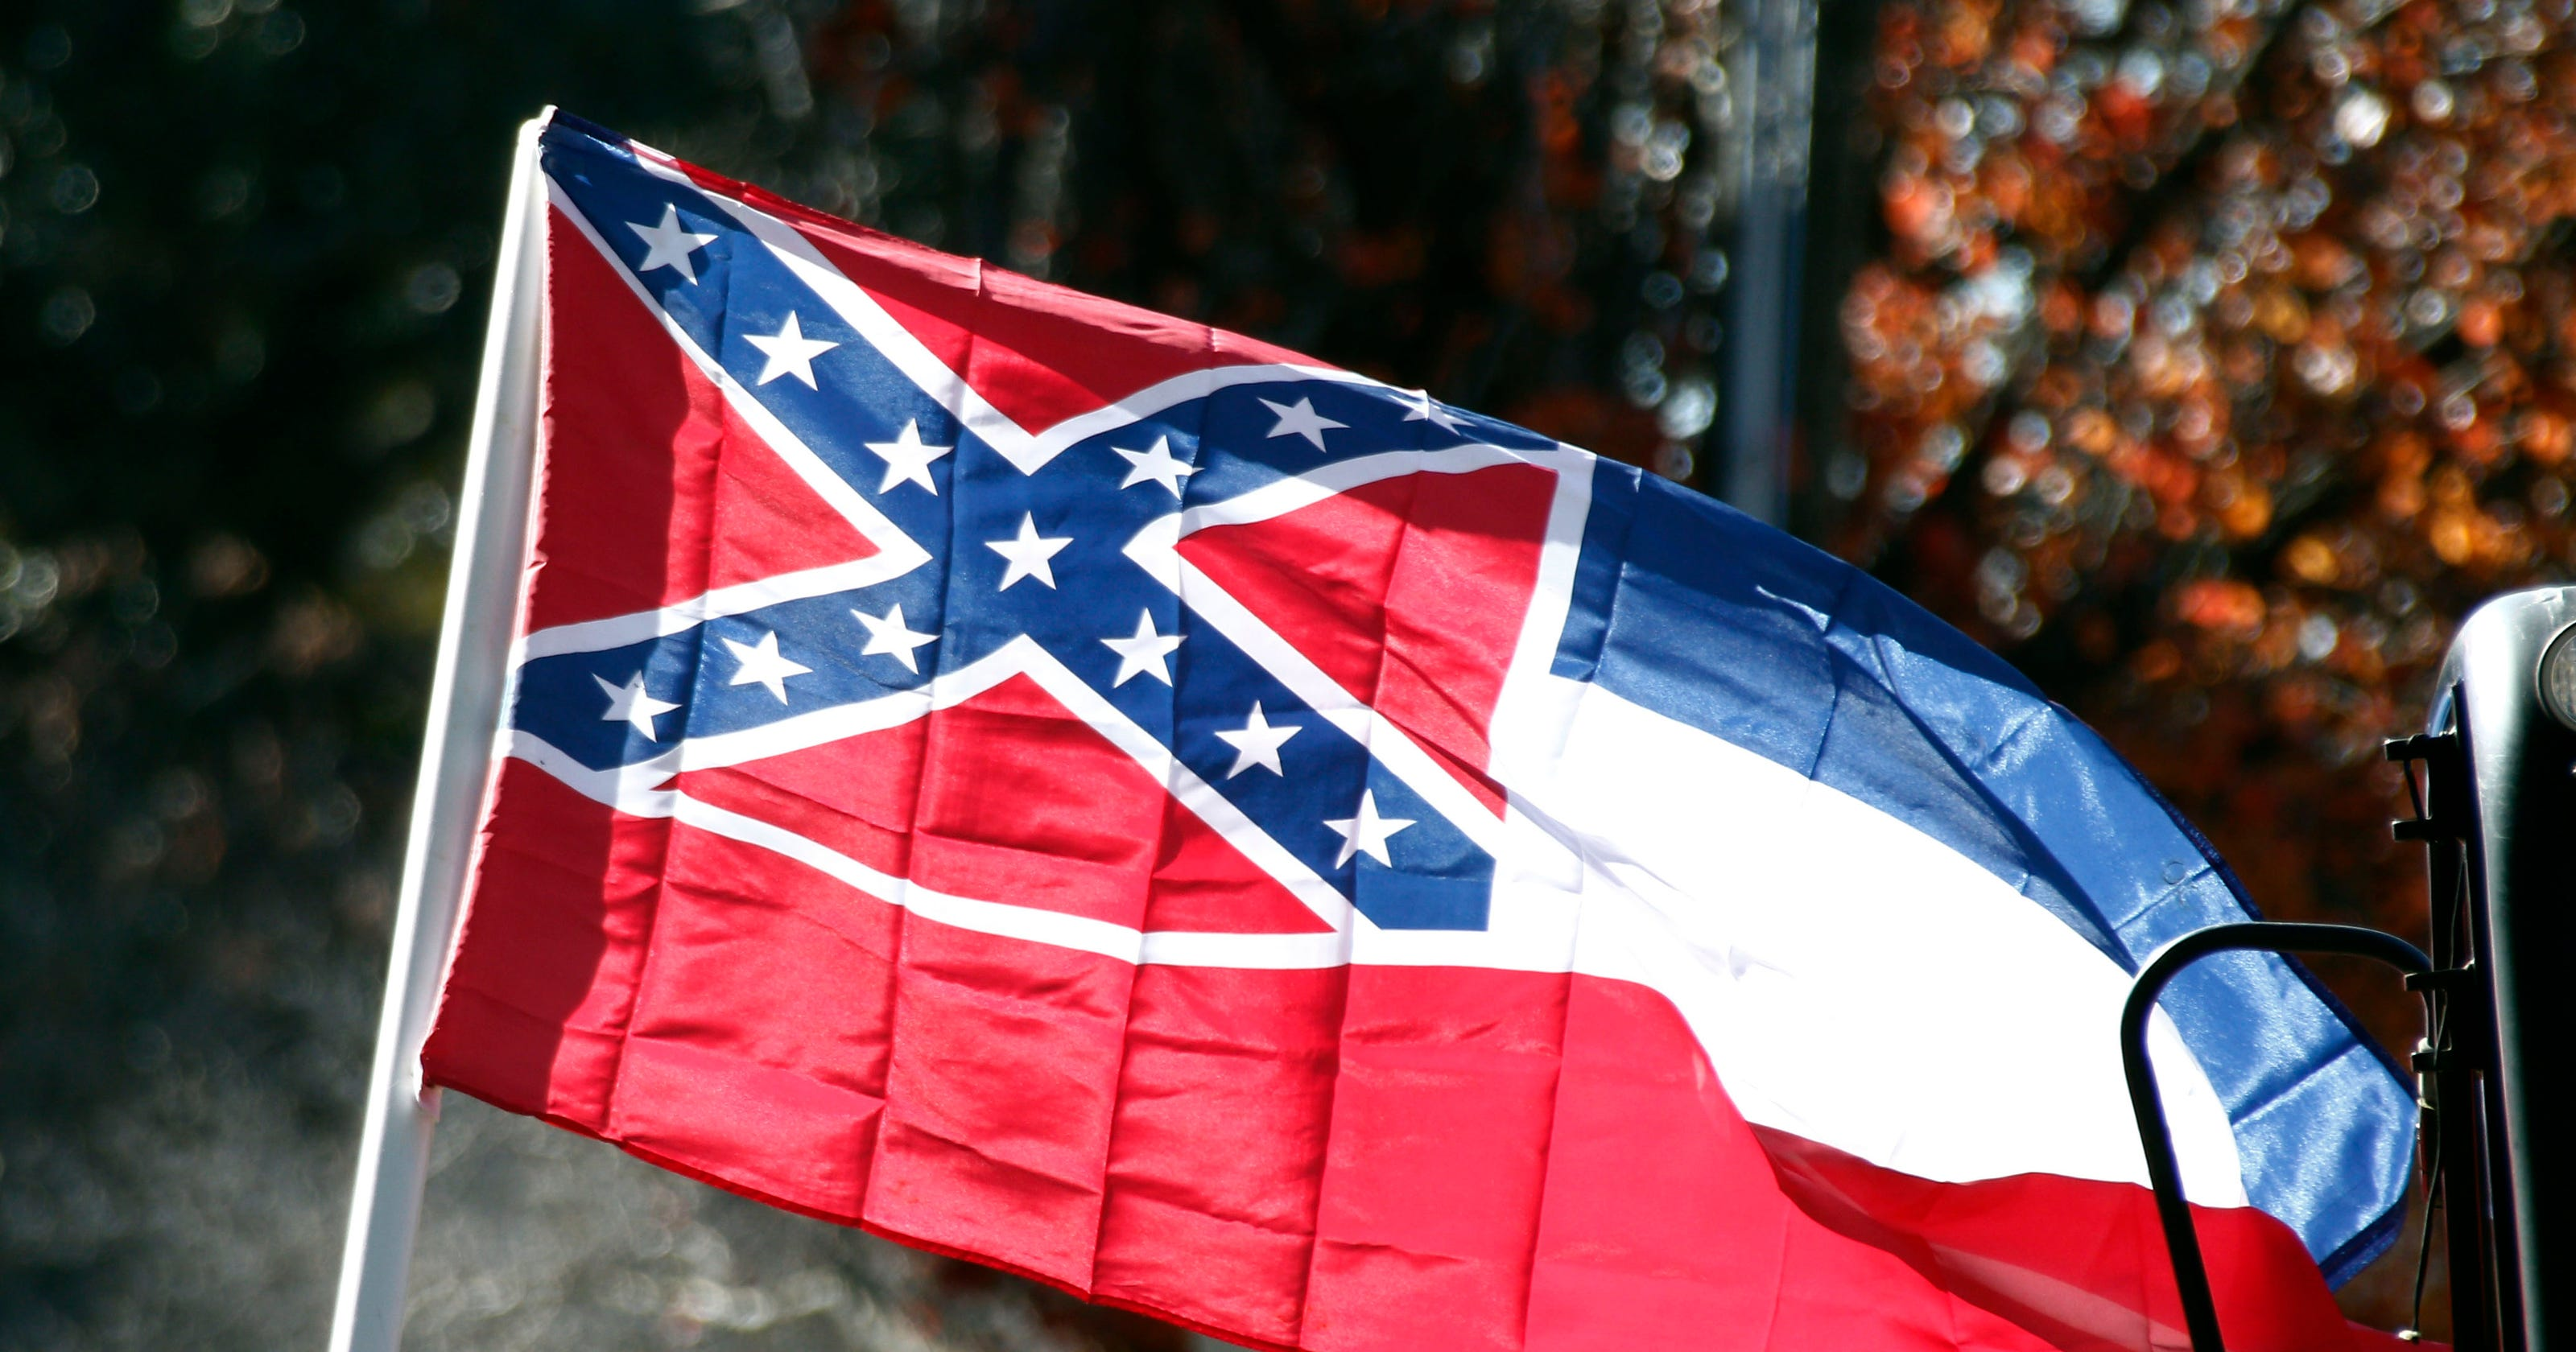 Mississippis Choice Confederate Past Or New Flag And Future